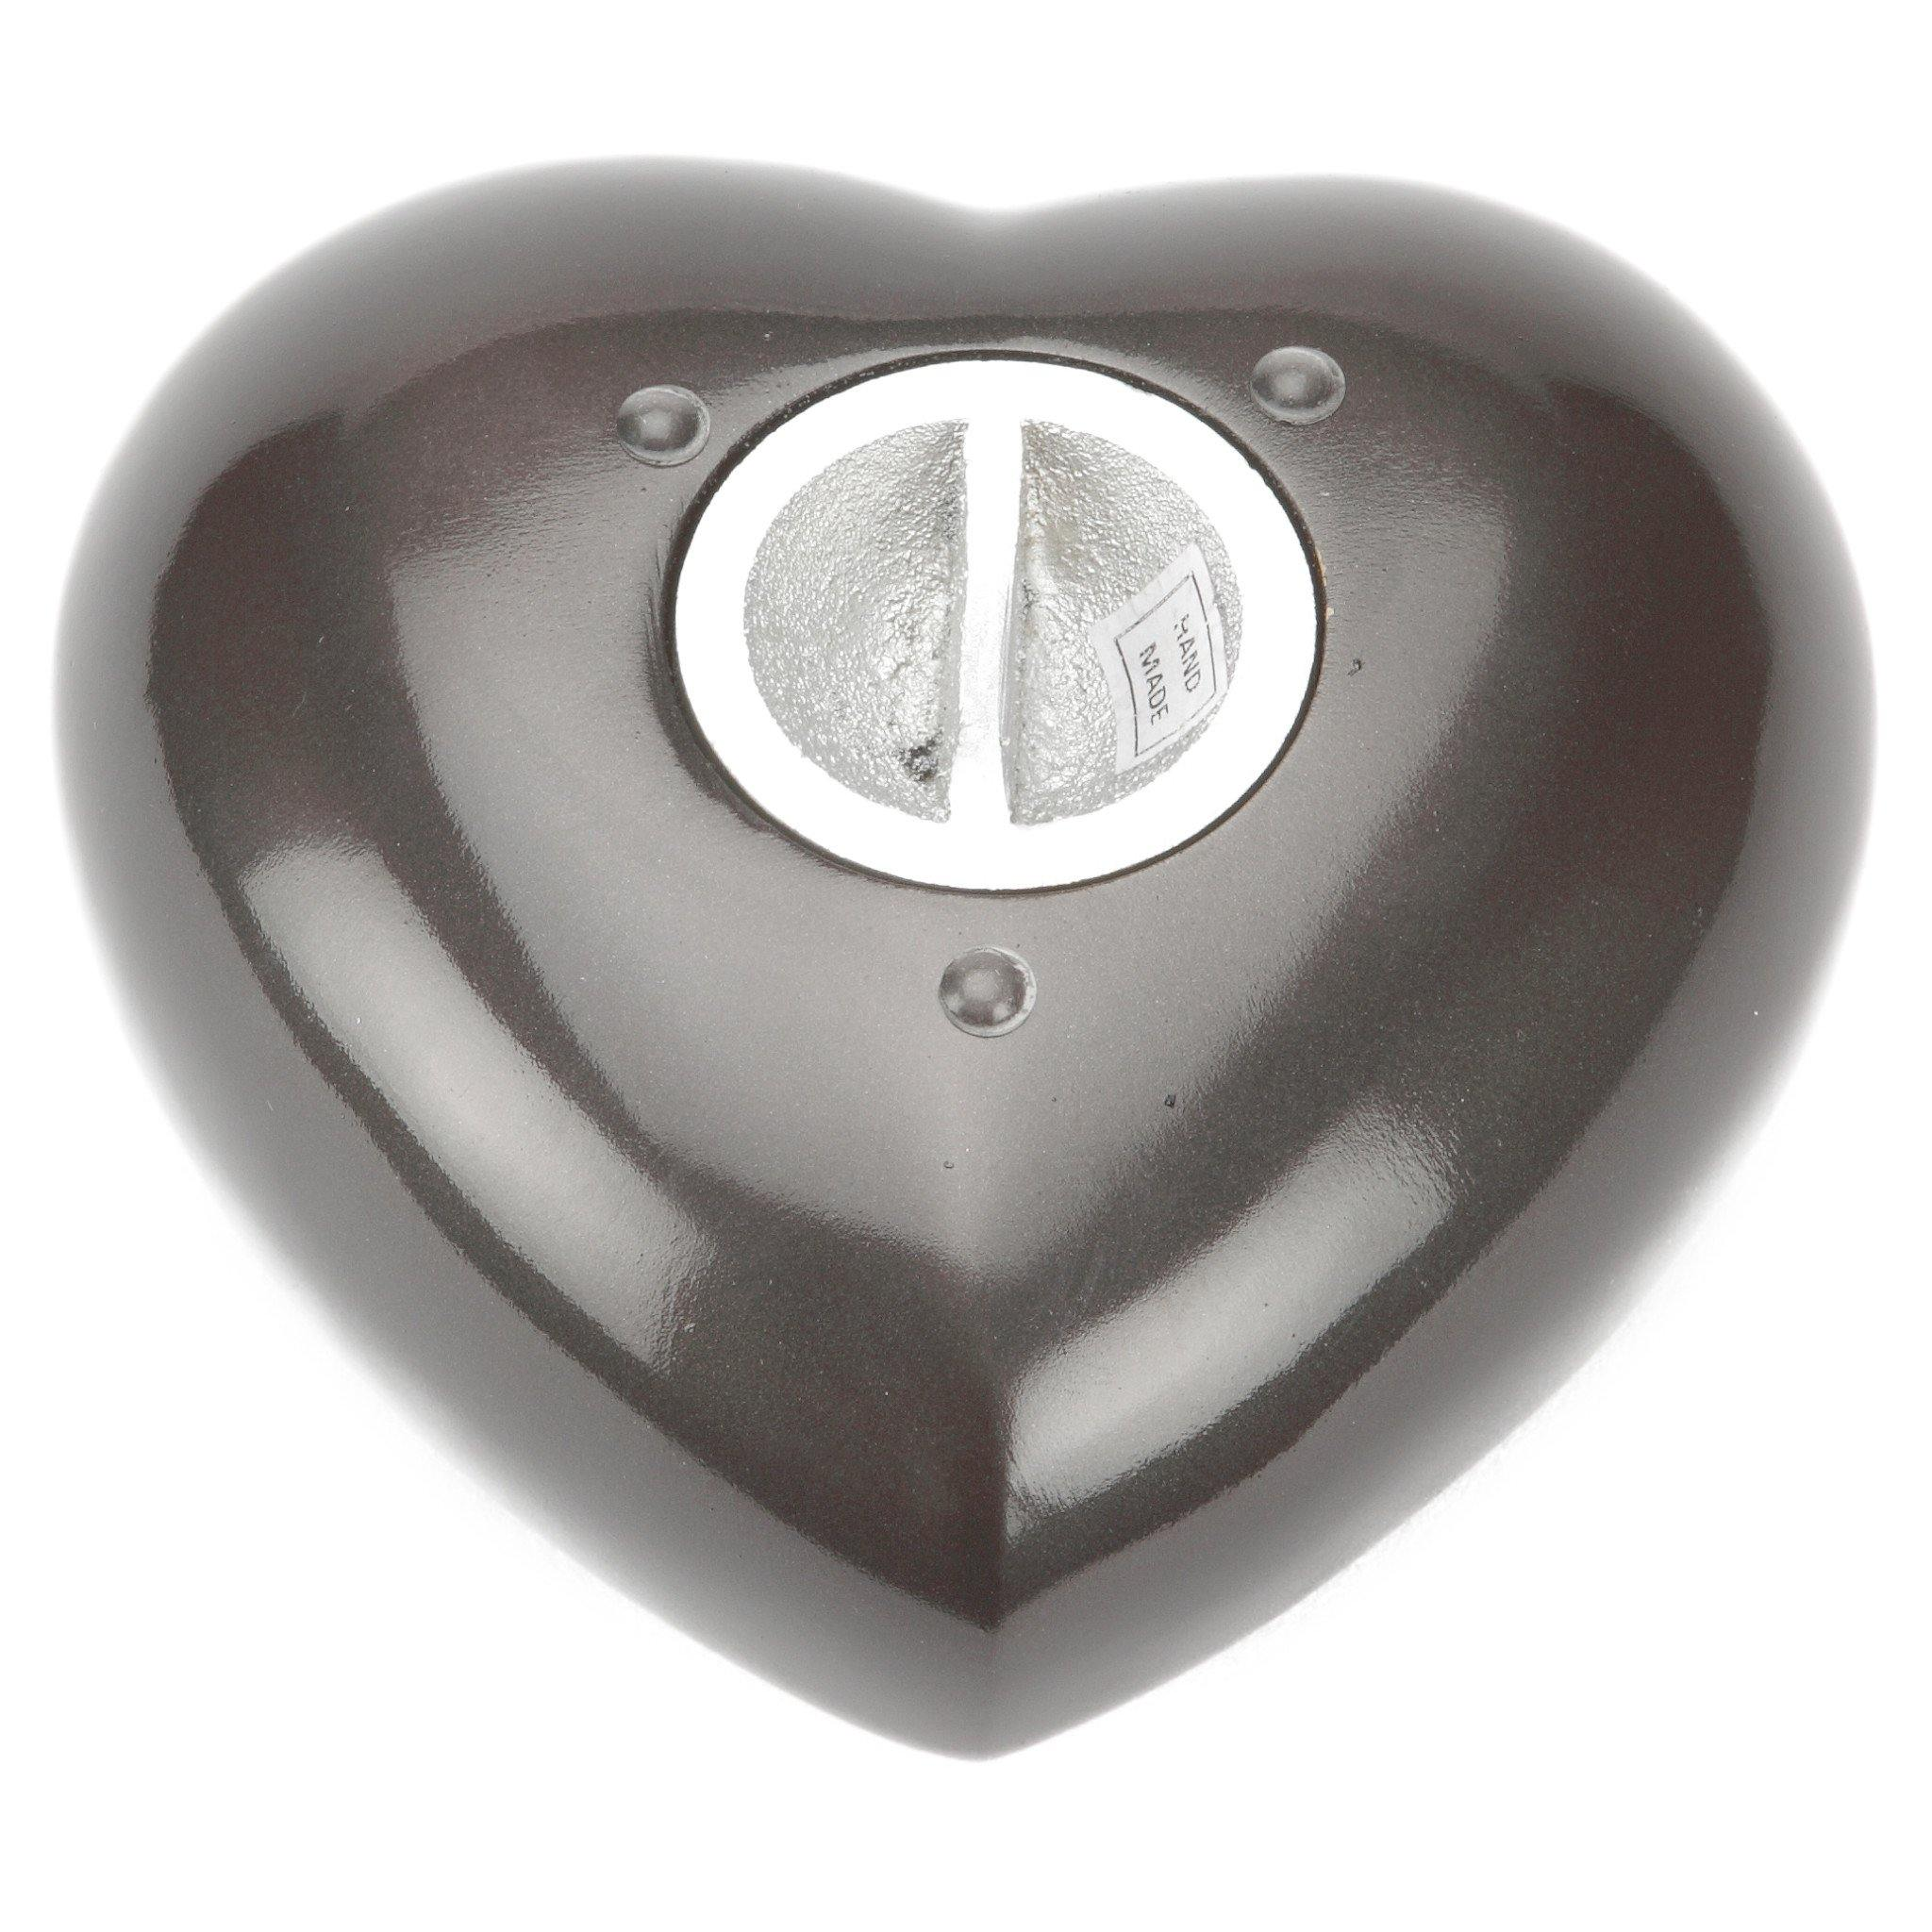 Taplow Teal Heart Cremation Ashes Keepsake Mini Urn - Urns UK